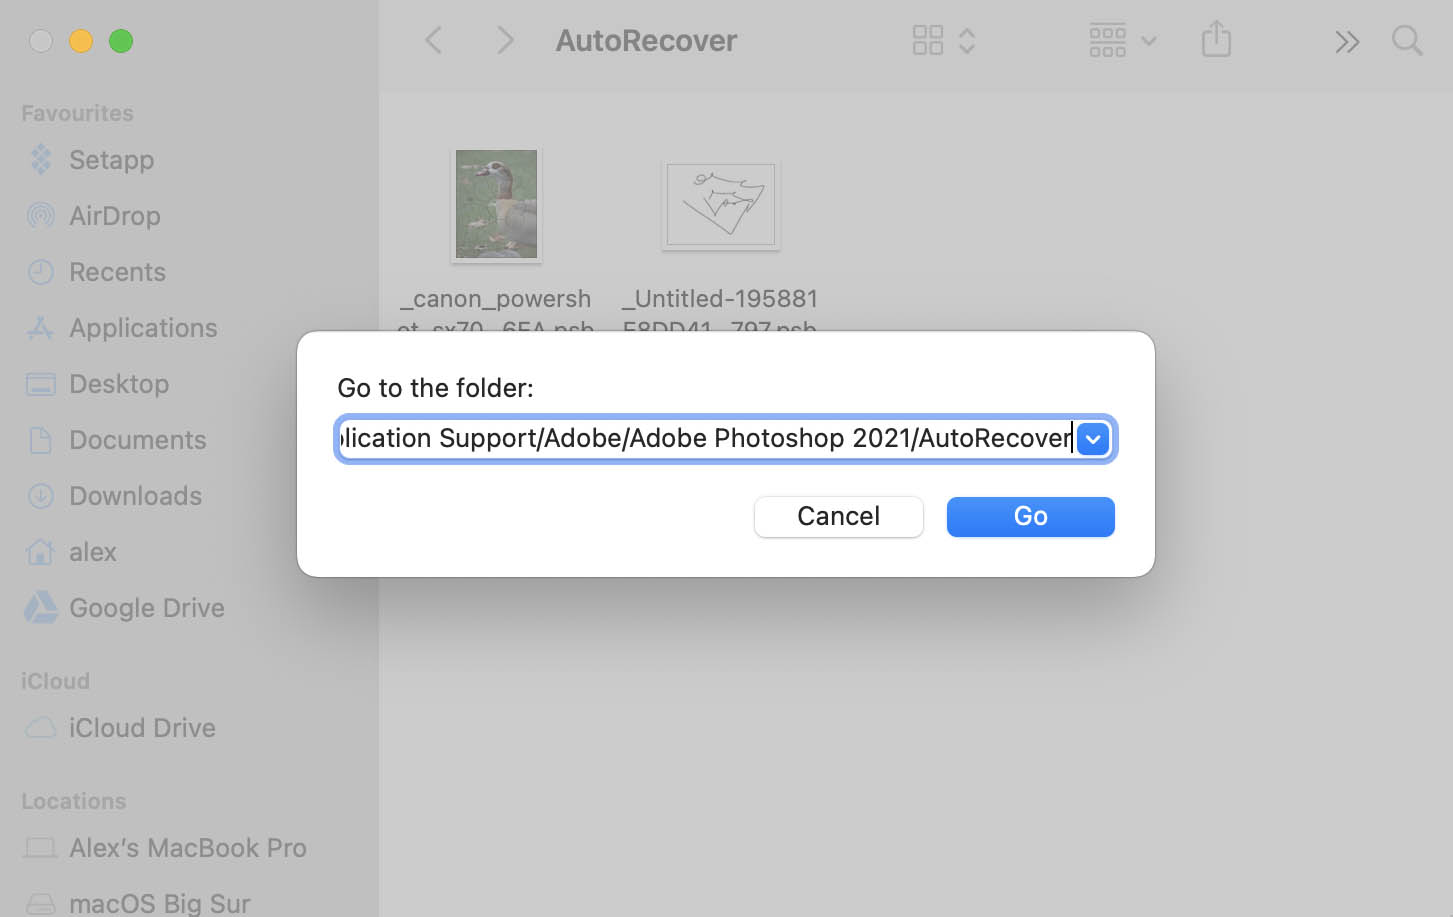 photoshop autorecover folder location in macos